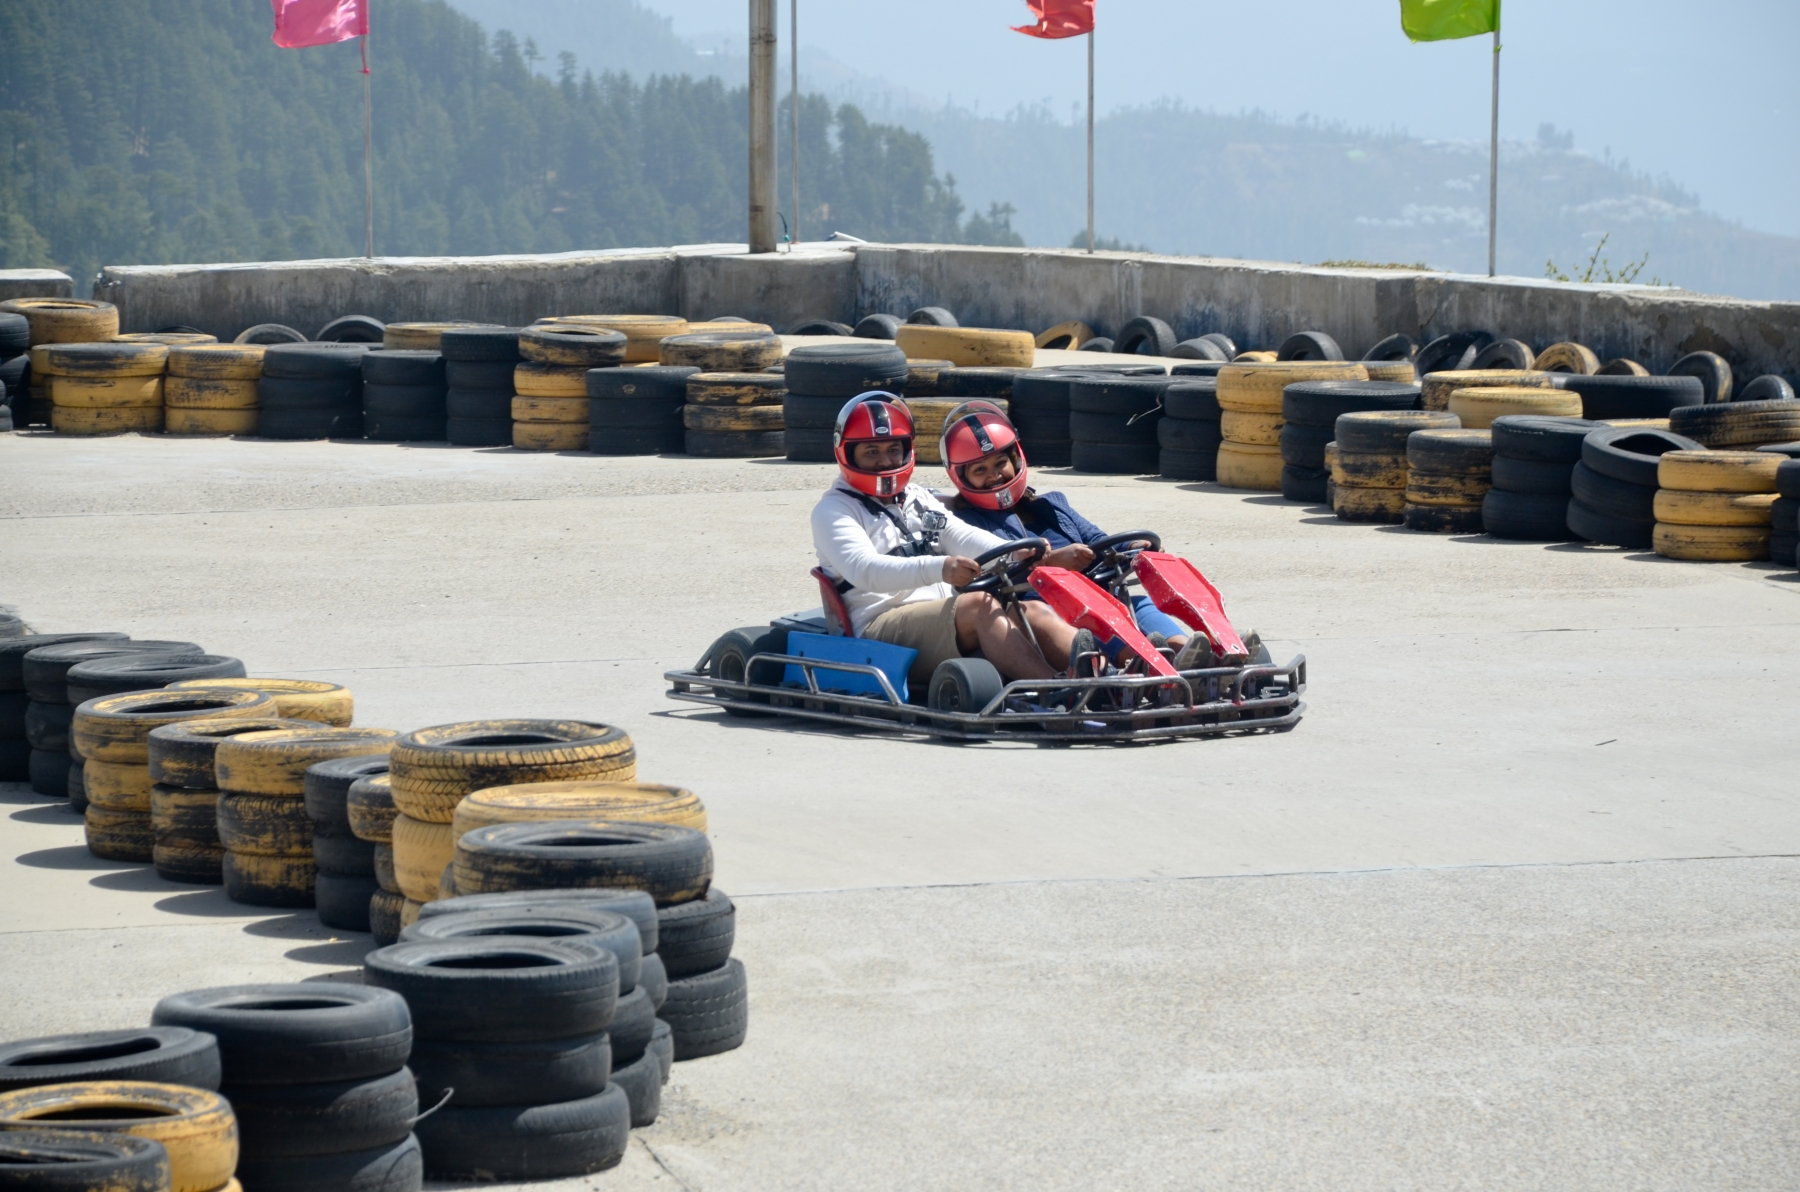 World highest Go-Kart arena(9000 fts) at Fun world,Kufri